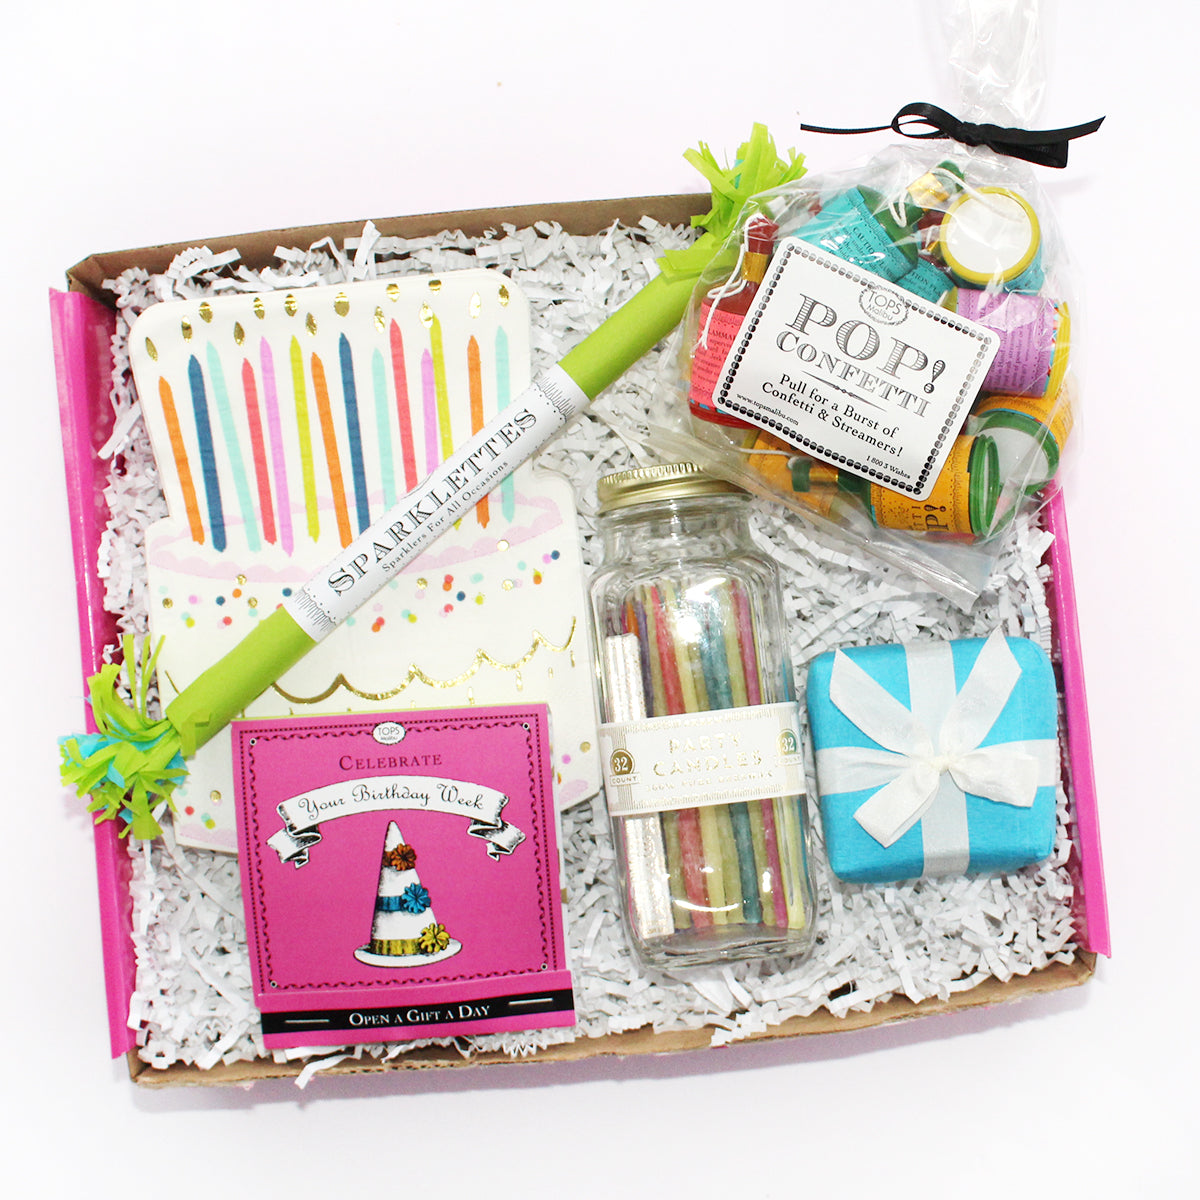 Happy Birthday box for your friend includes cake napkins, candles, sparklettes, surprises, candles, poppers, and lots more